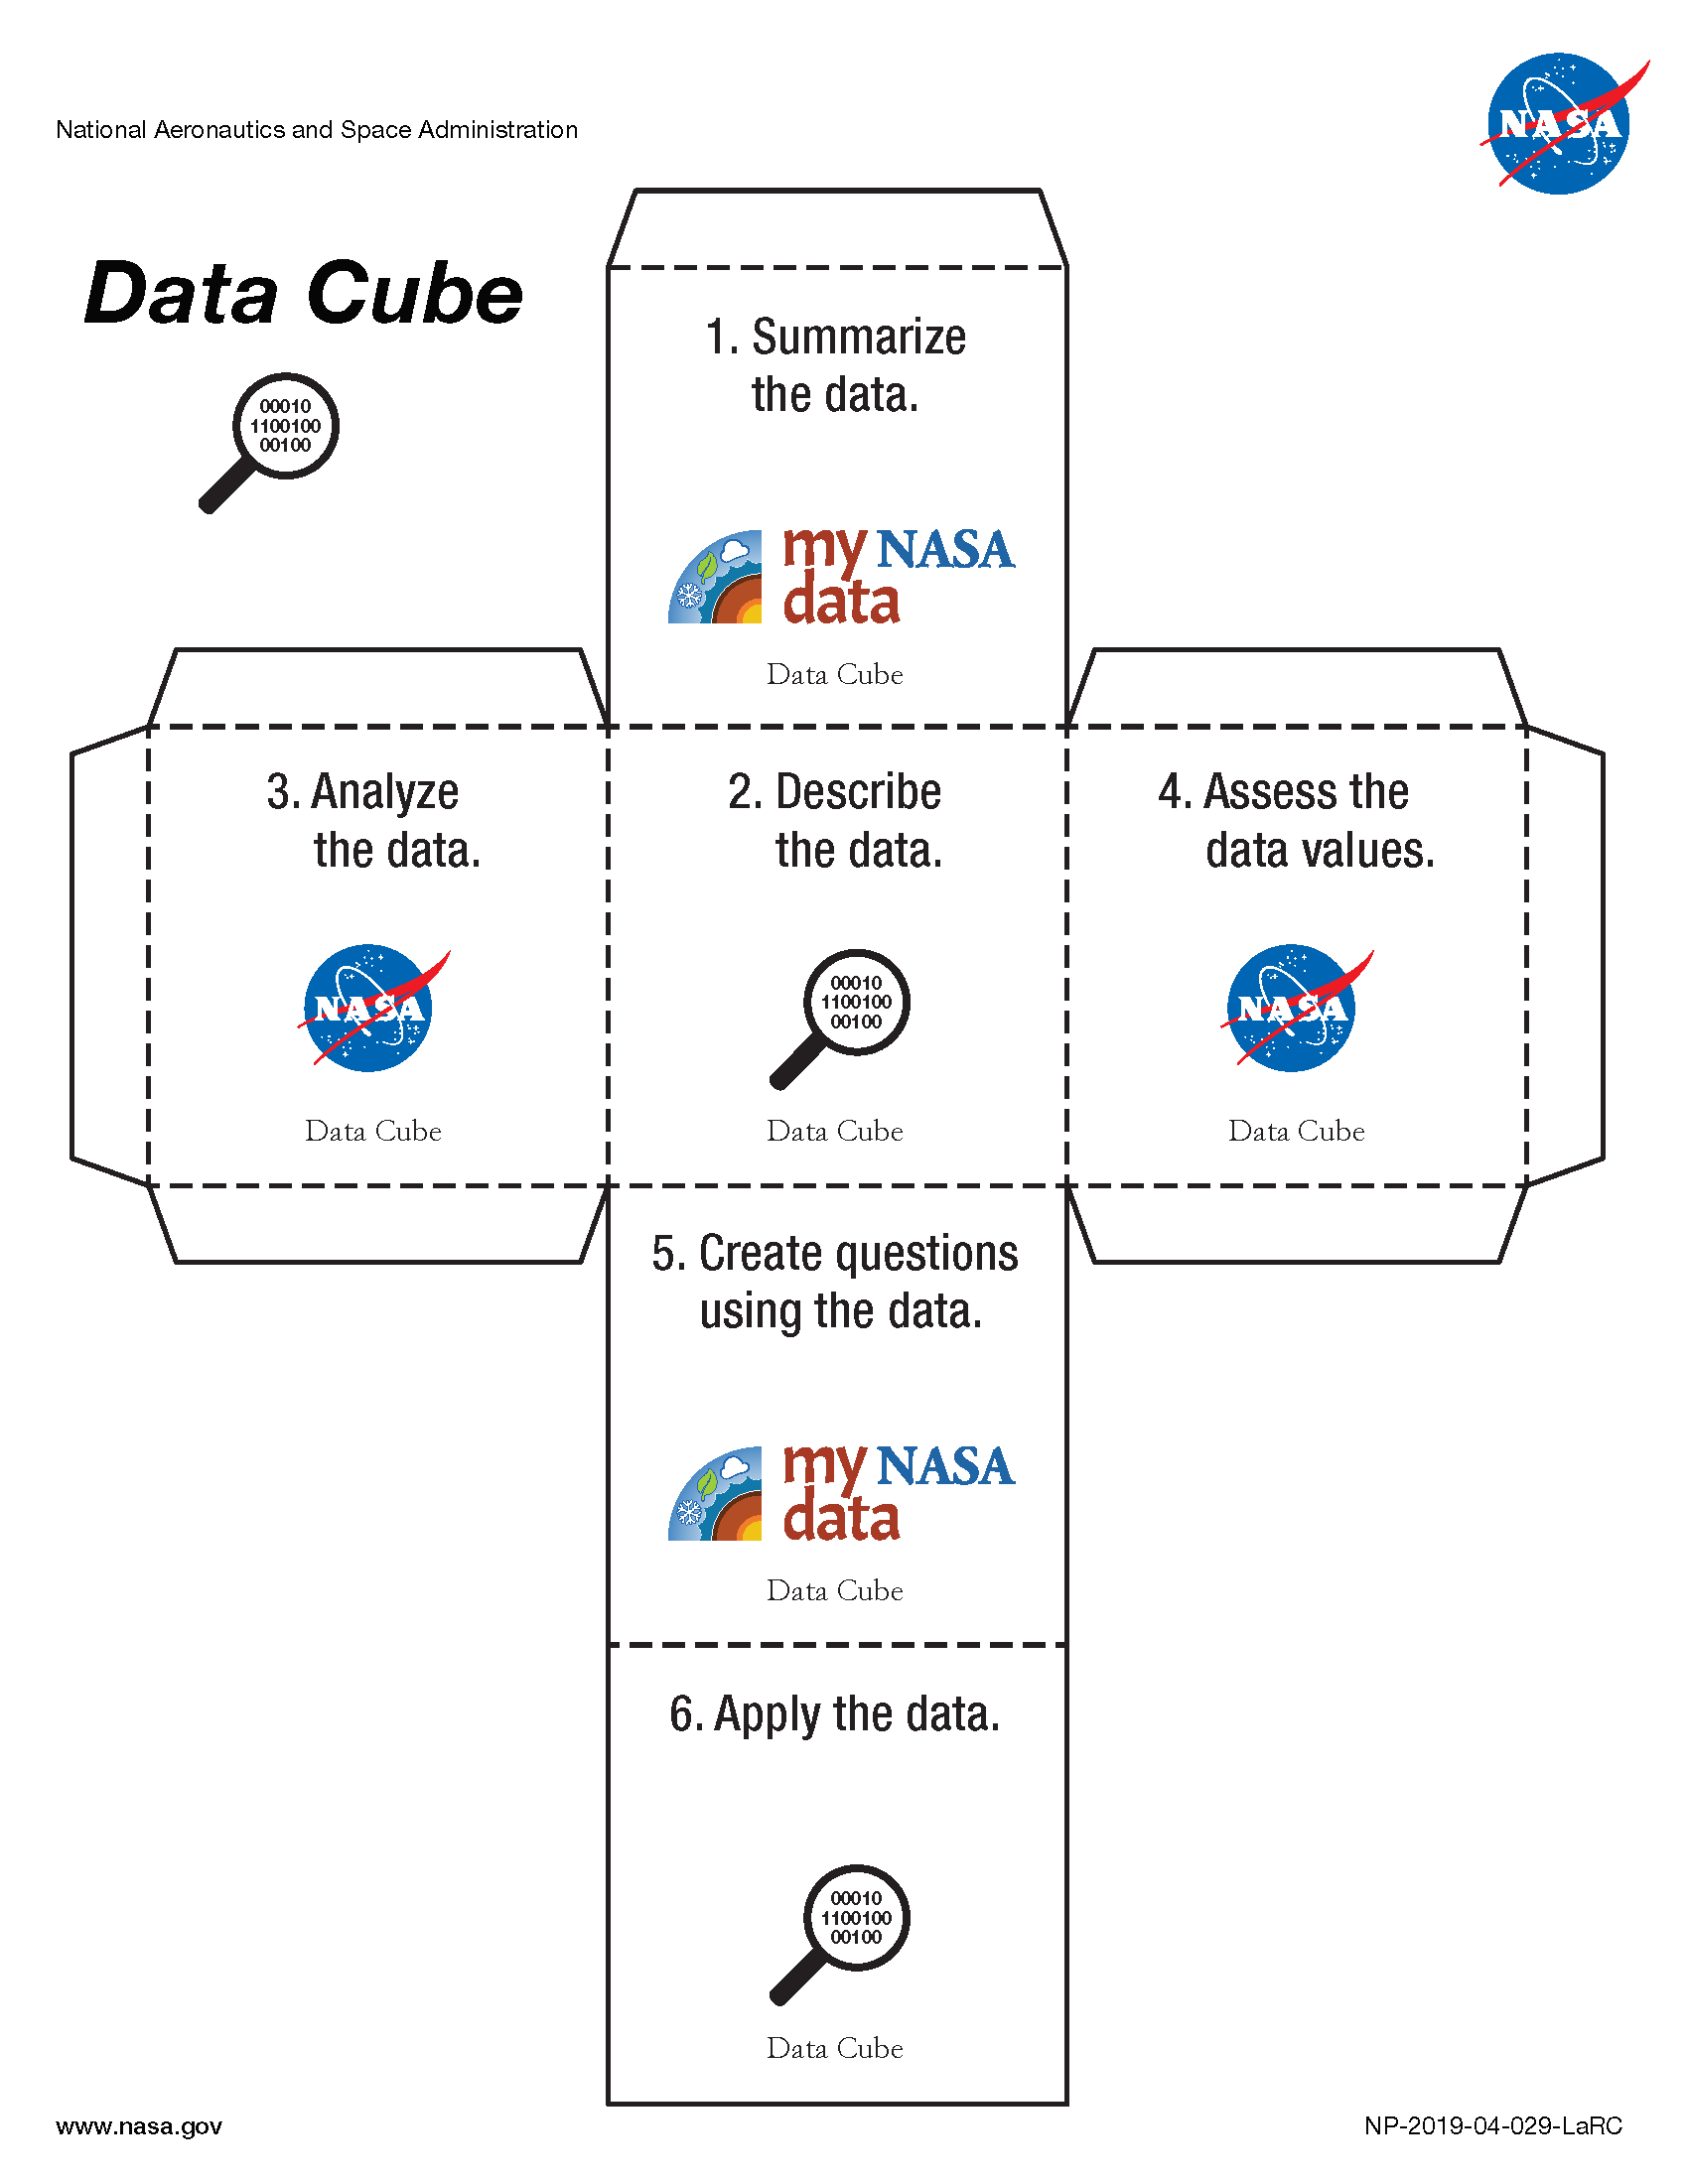 My NASA Data - Data Literacy Cube - Data Cube